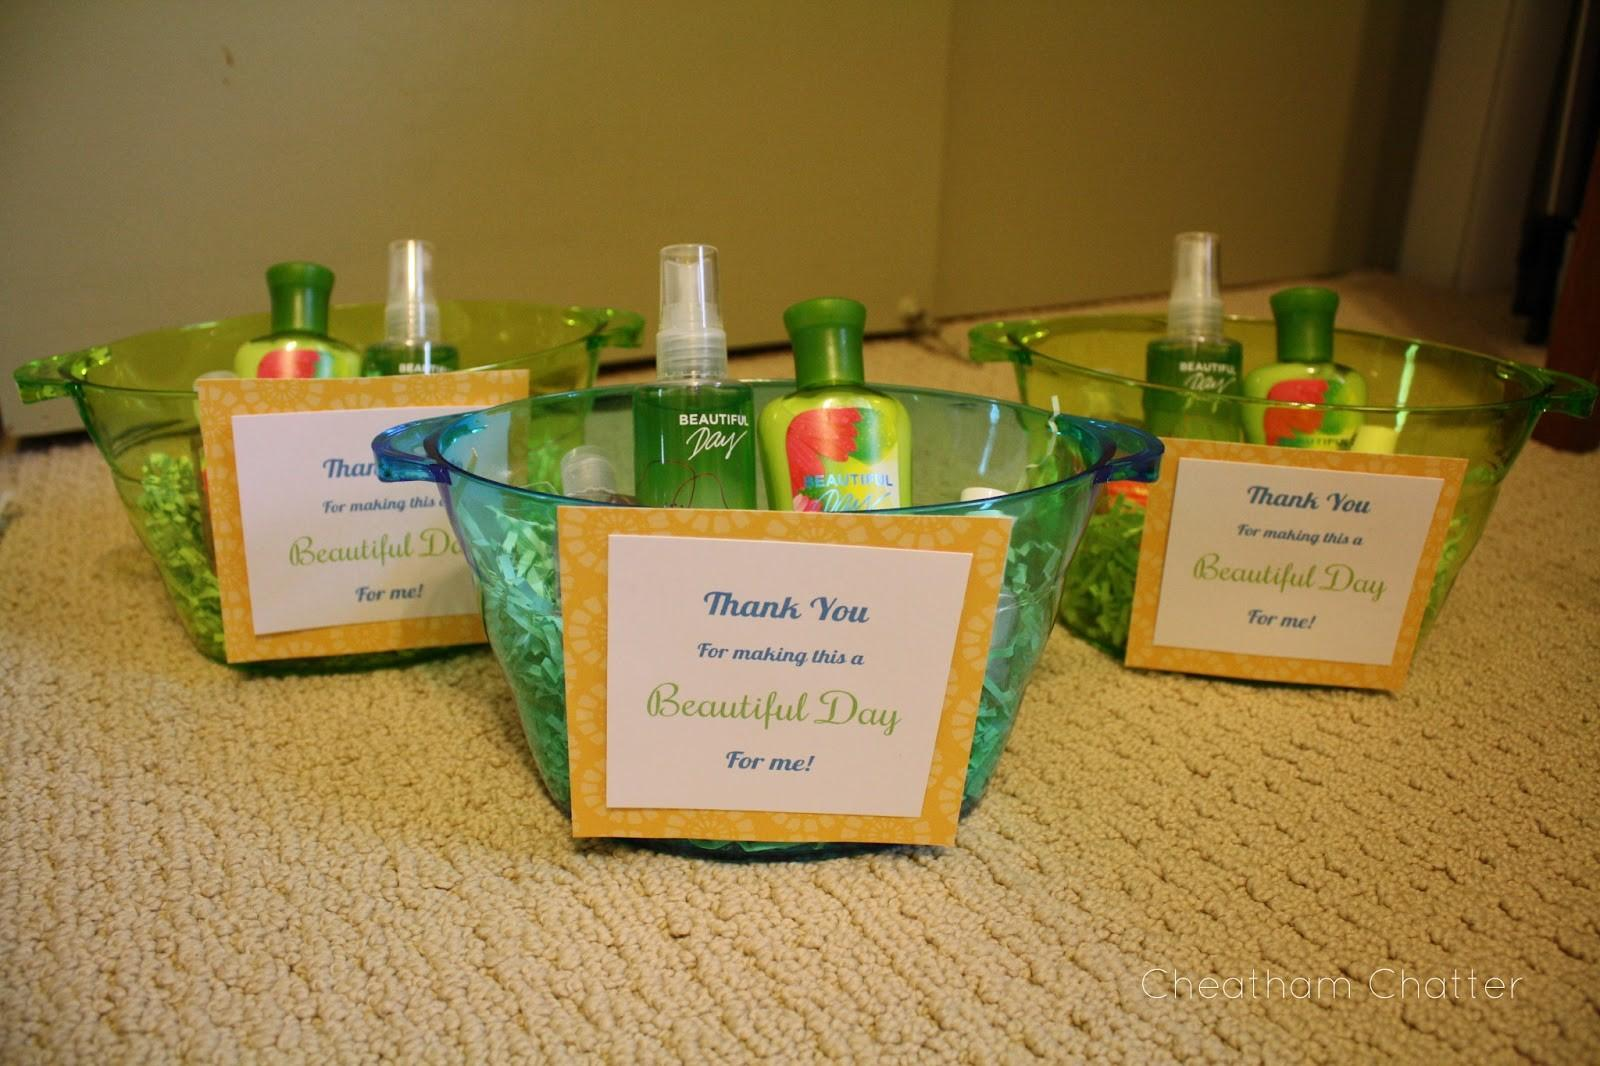 Cheatham Chatter Baby Shower Favors Hostess Gifts